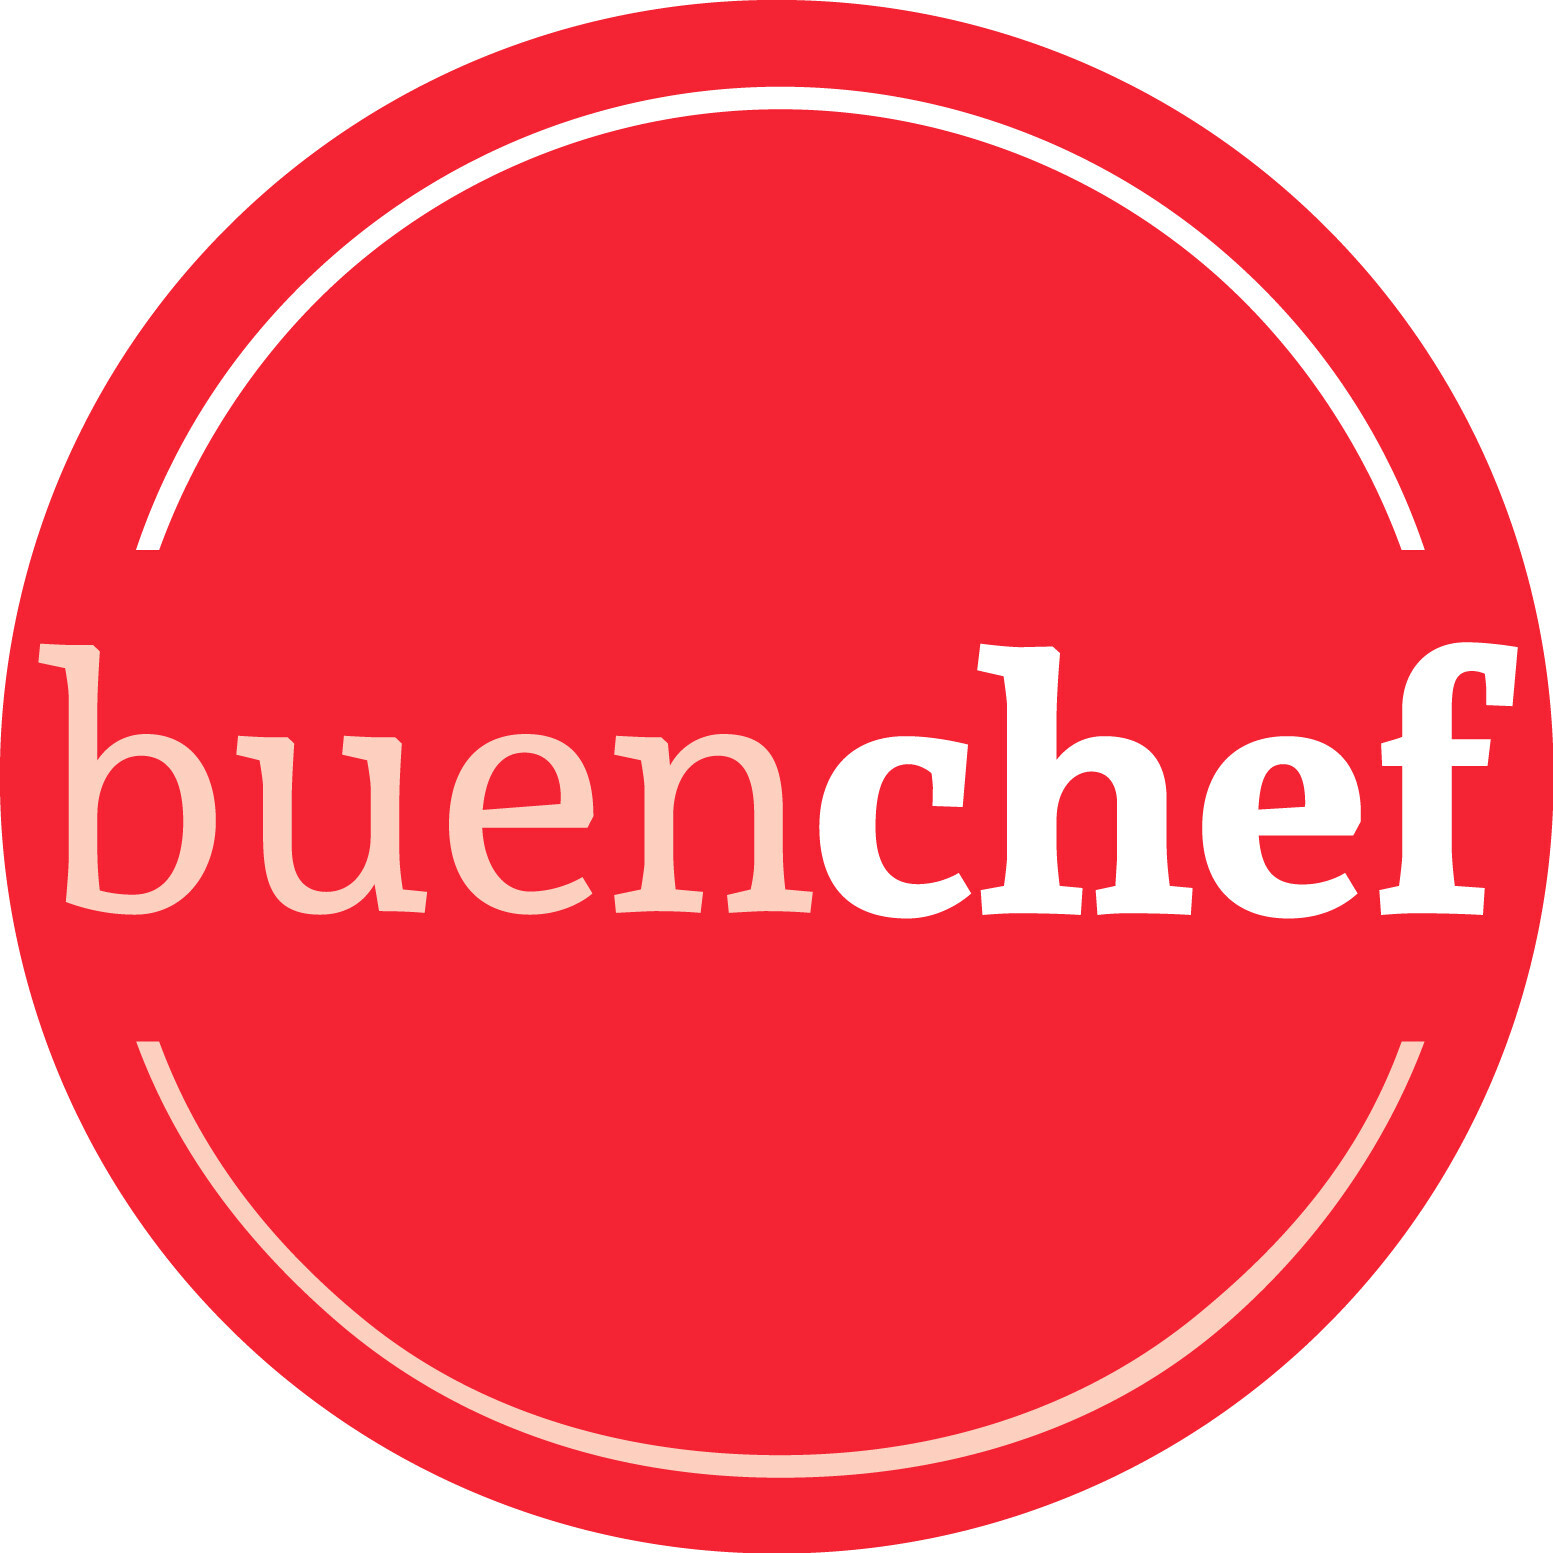 Buenchef